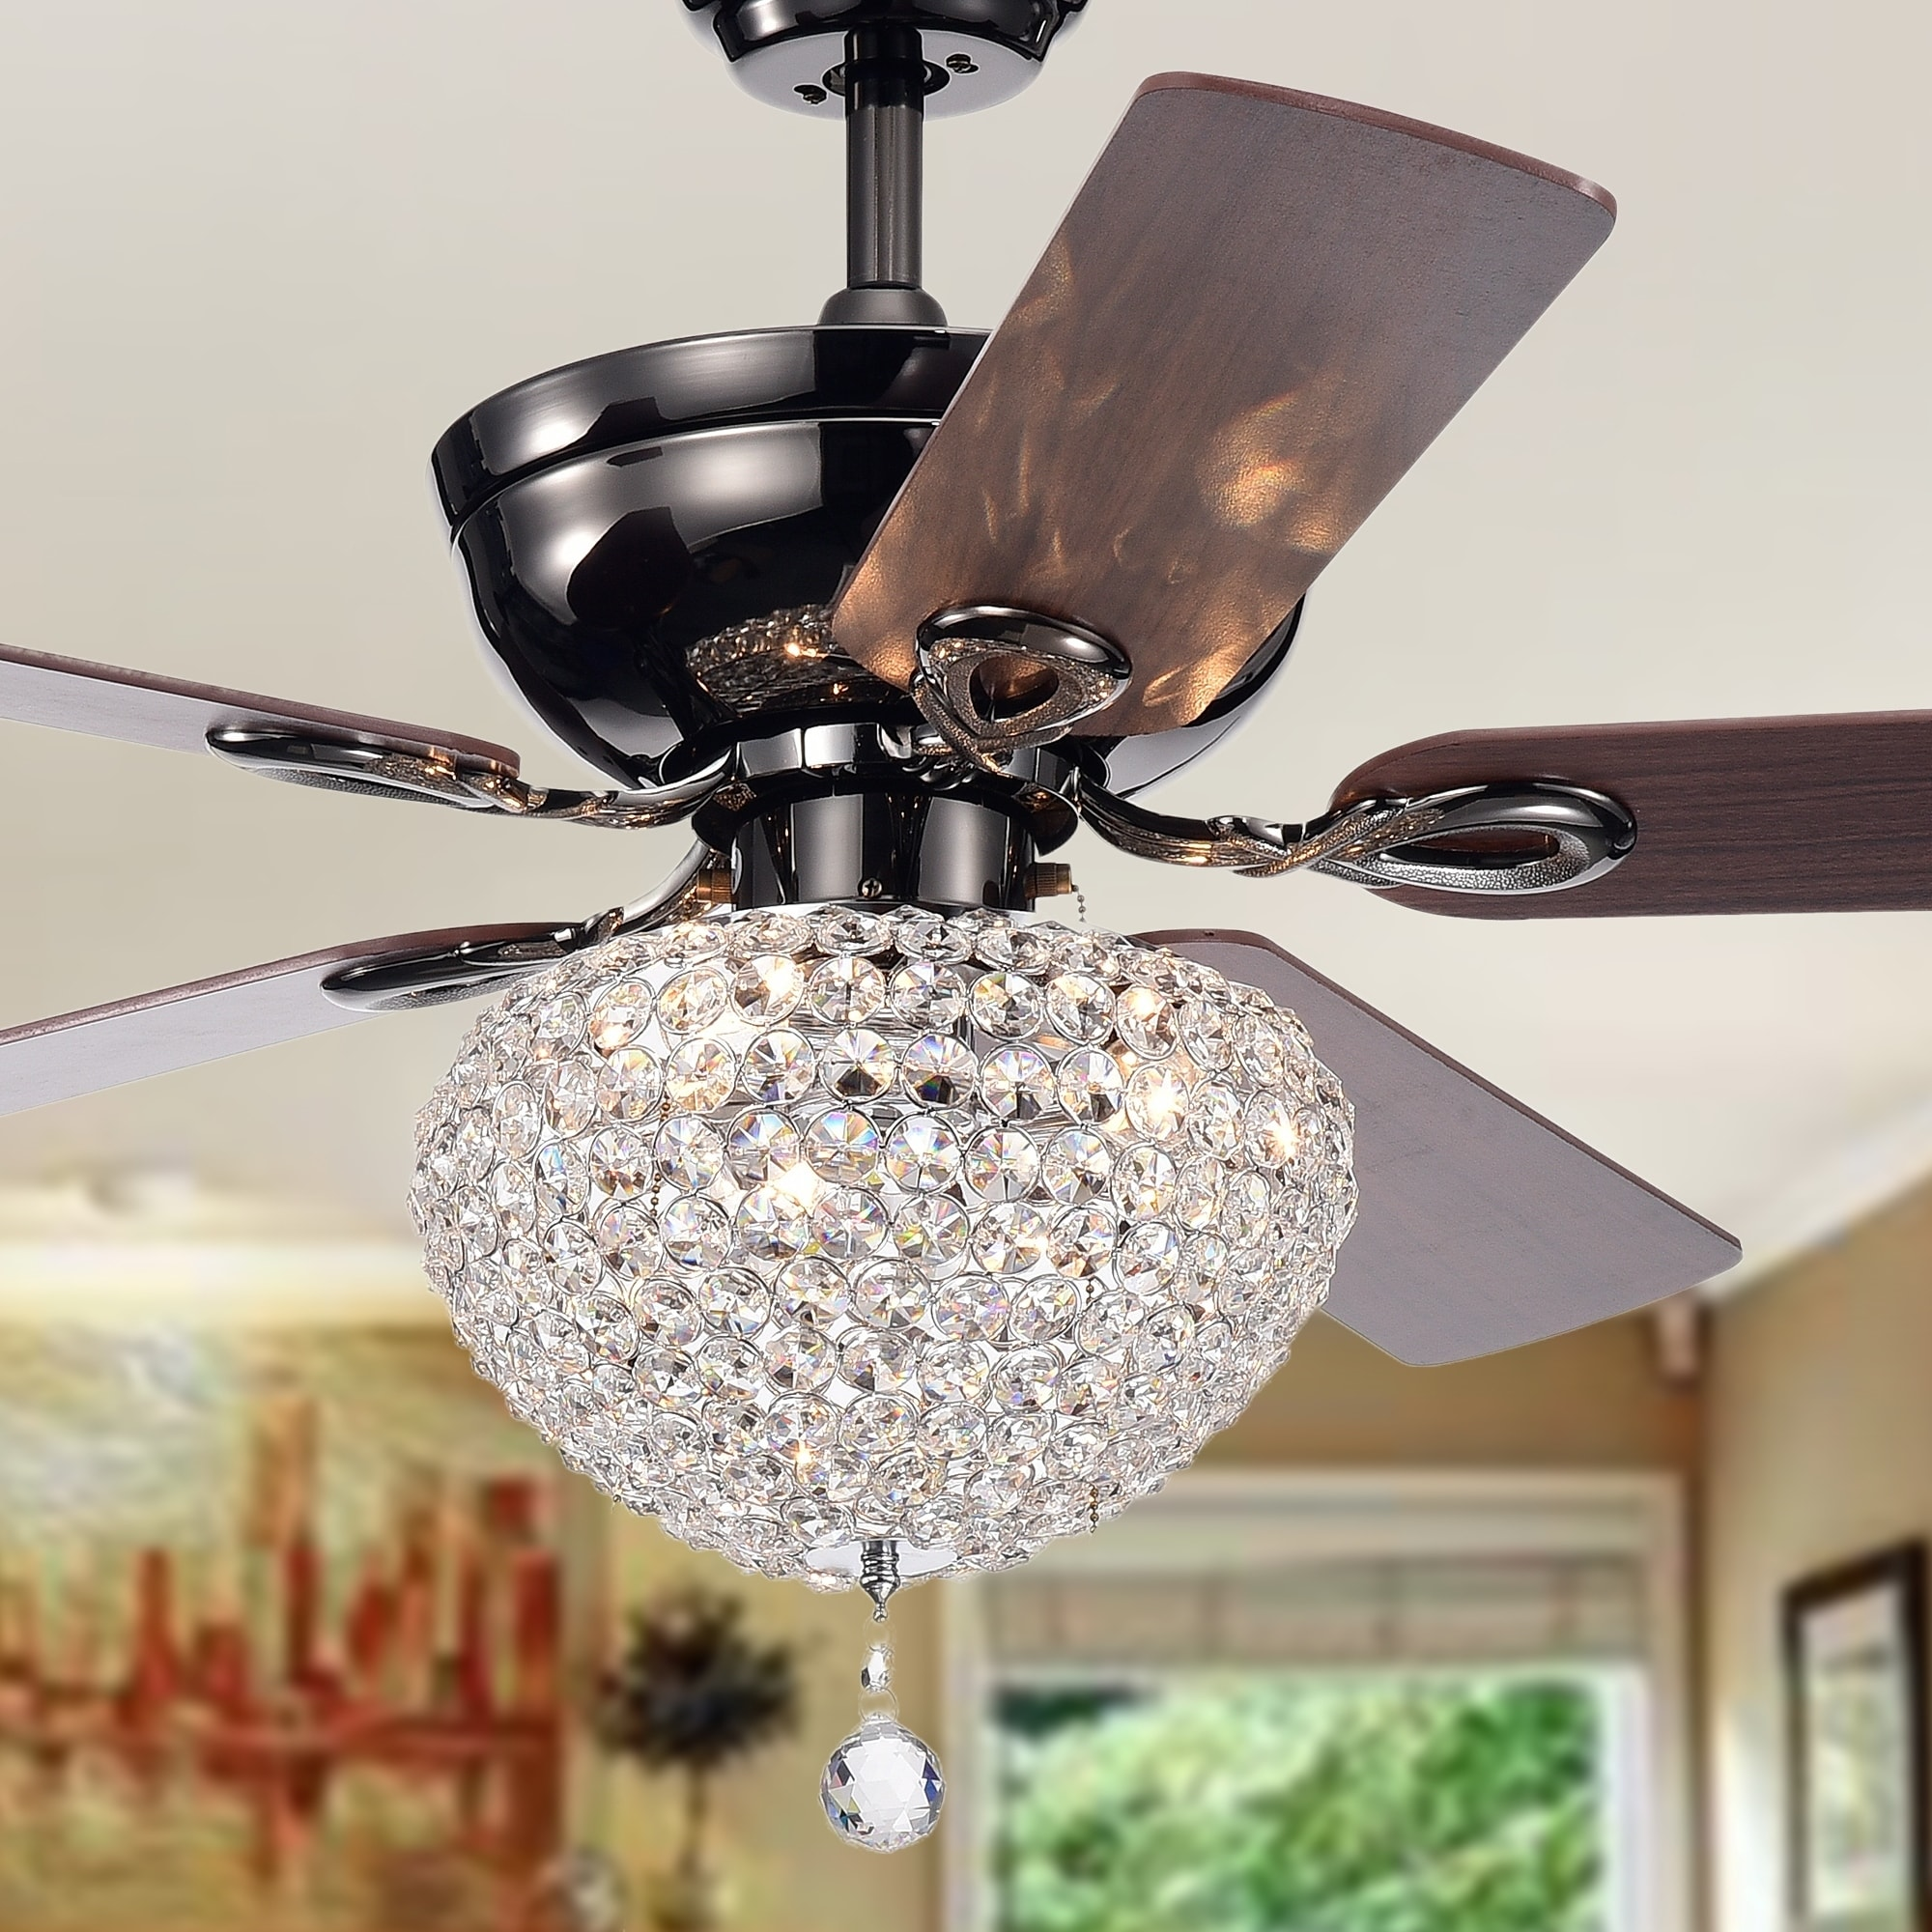 Shop Taliko 3 Light Crystal Basket 5 Blade Wood With Black Metal Wall Control Fan Switch Pull Cord Housing 52 Inch Ceiling Optional Remote On Sale Free Shipping Today